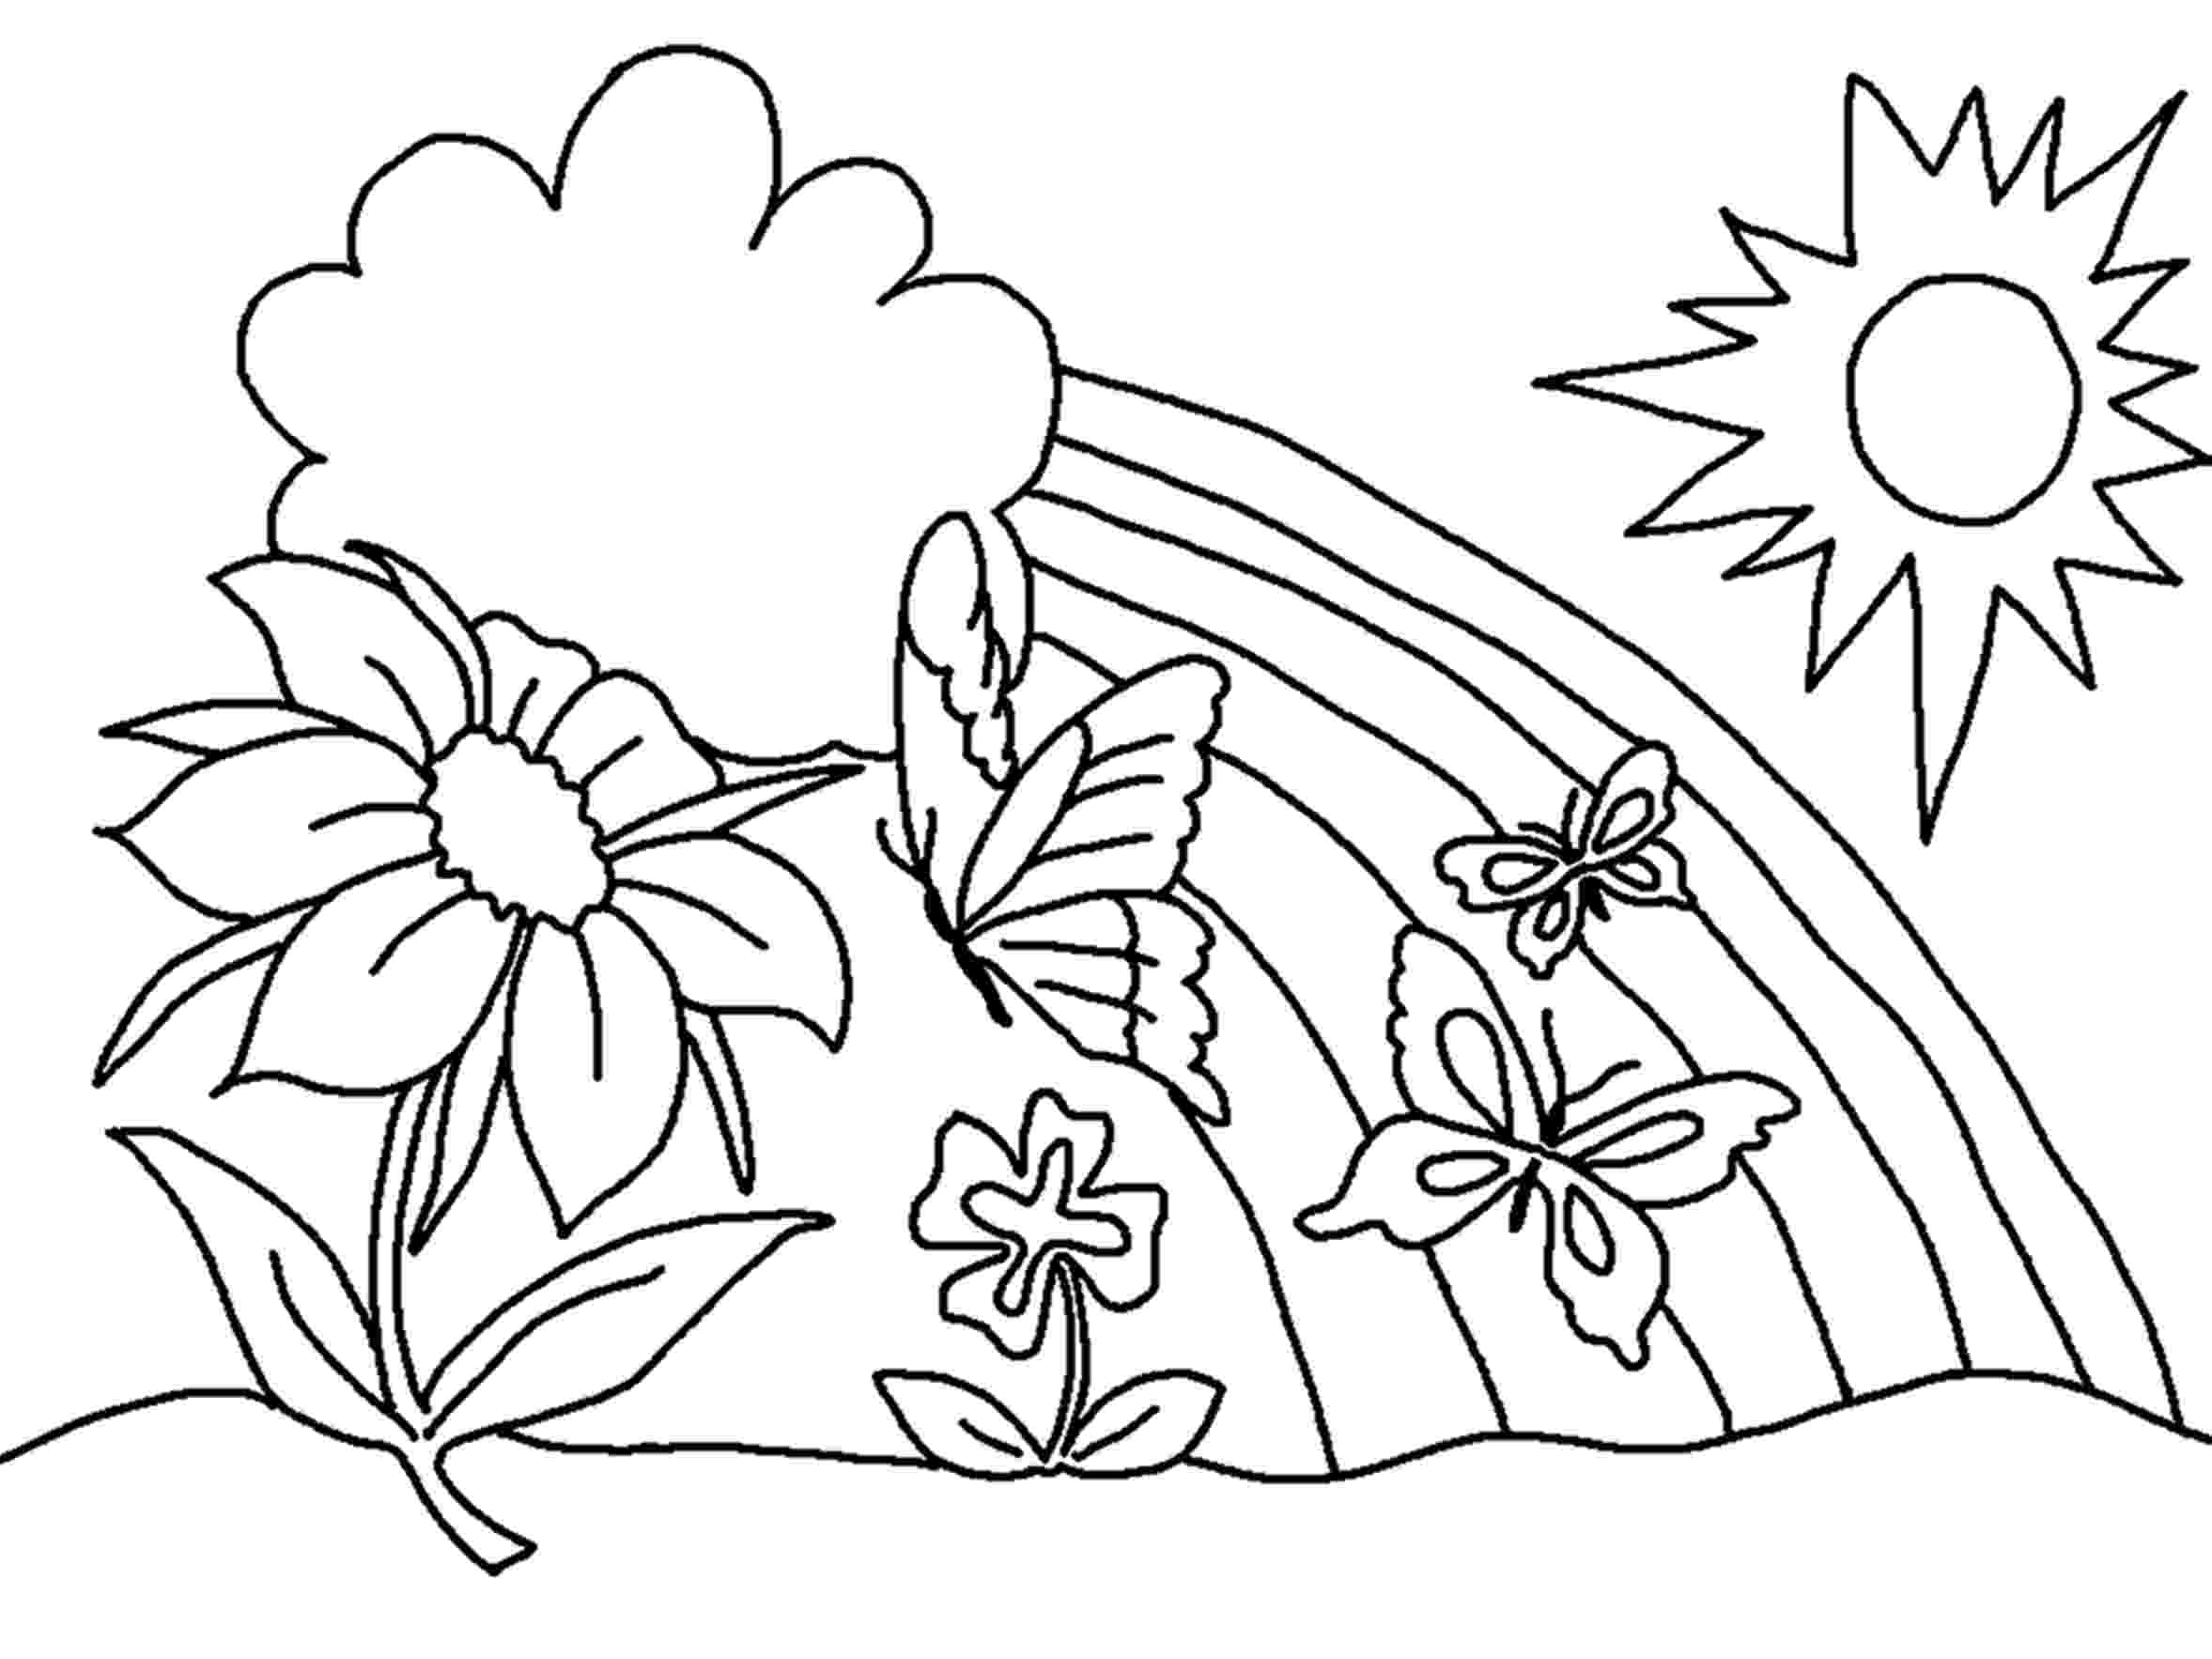 pics of roses to color printable rose coloring pages for kids cool2bkids to of roses pics color